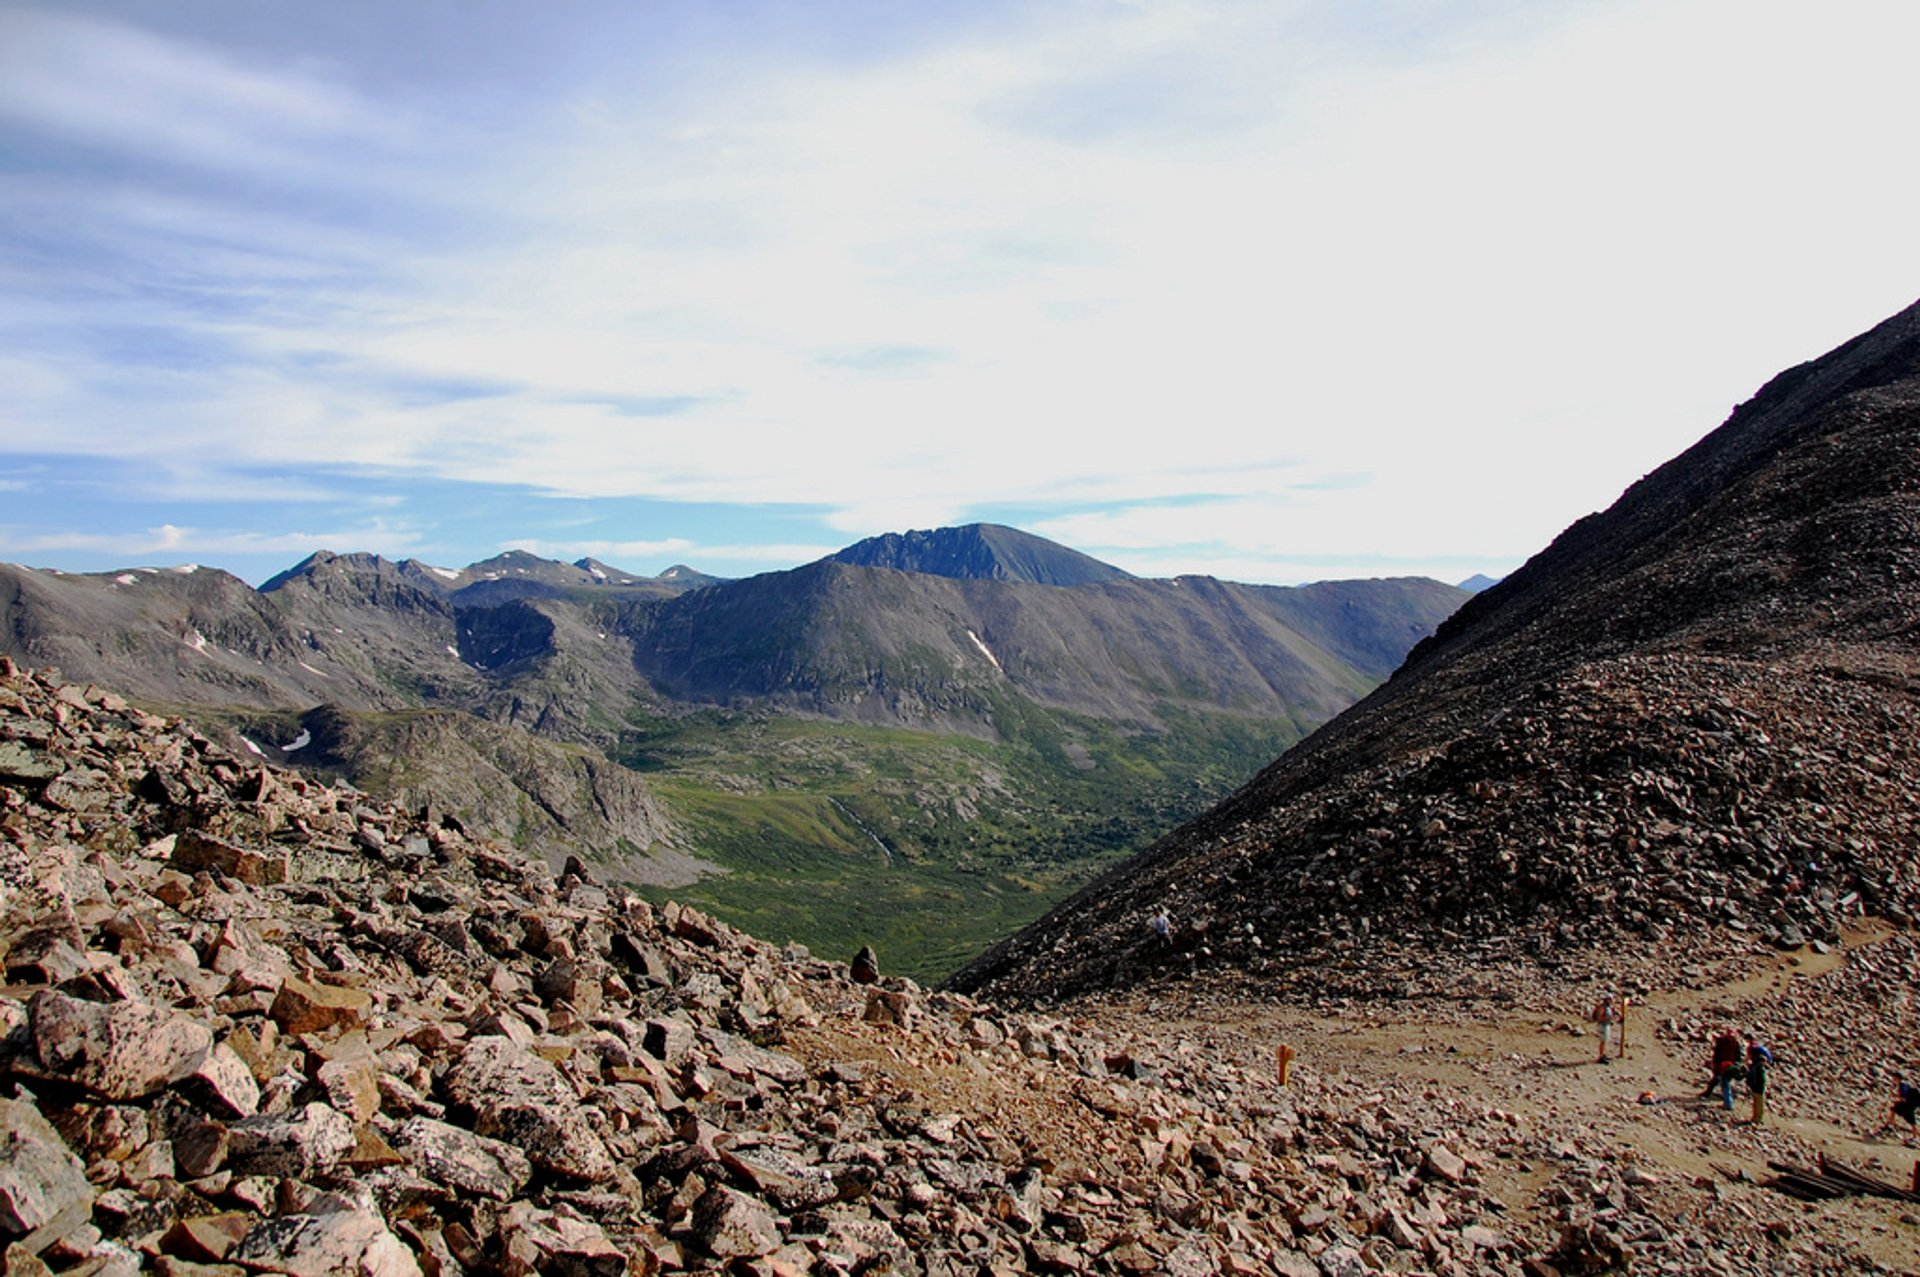 Mt Democrat in July 2020